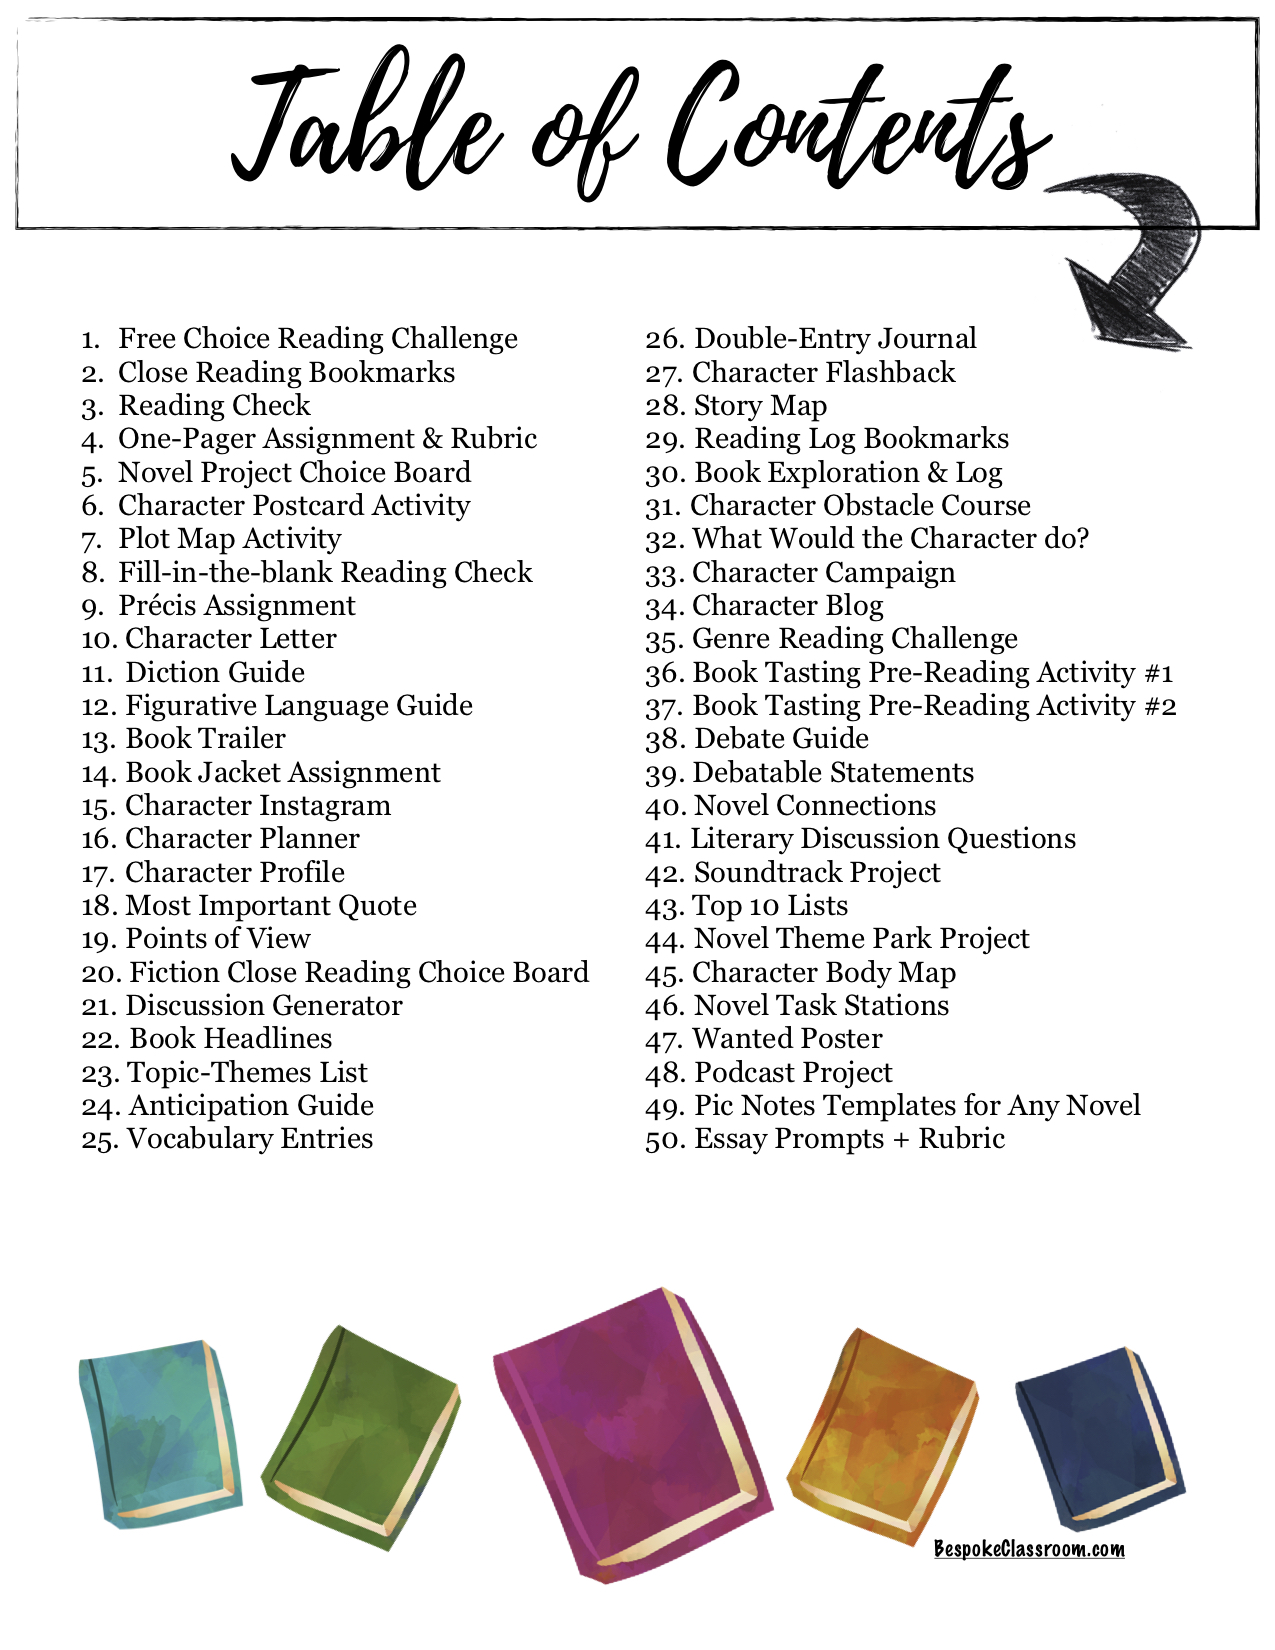 50 Activities and Projects for Any Novel by. Bespoke ELA pic11.jpg